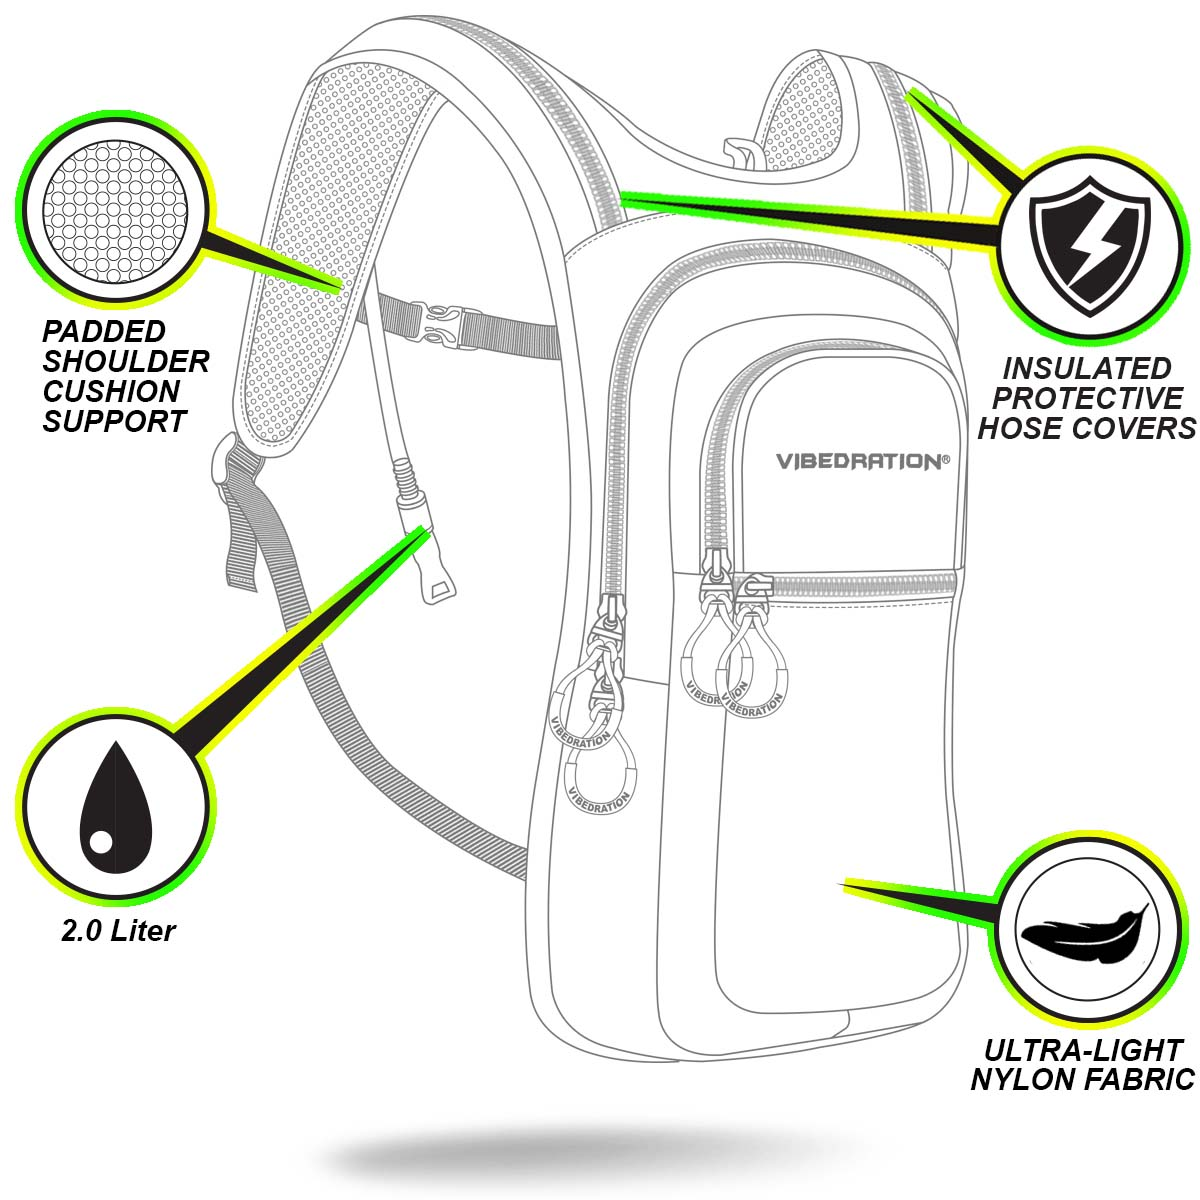 VIP 2.0L Nylon Daypack front side features